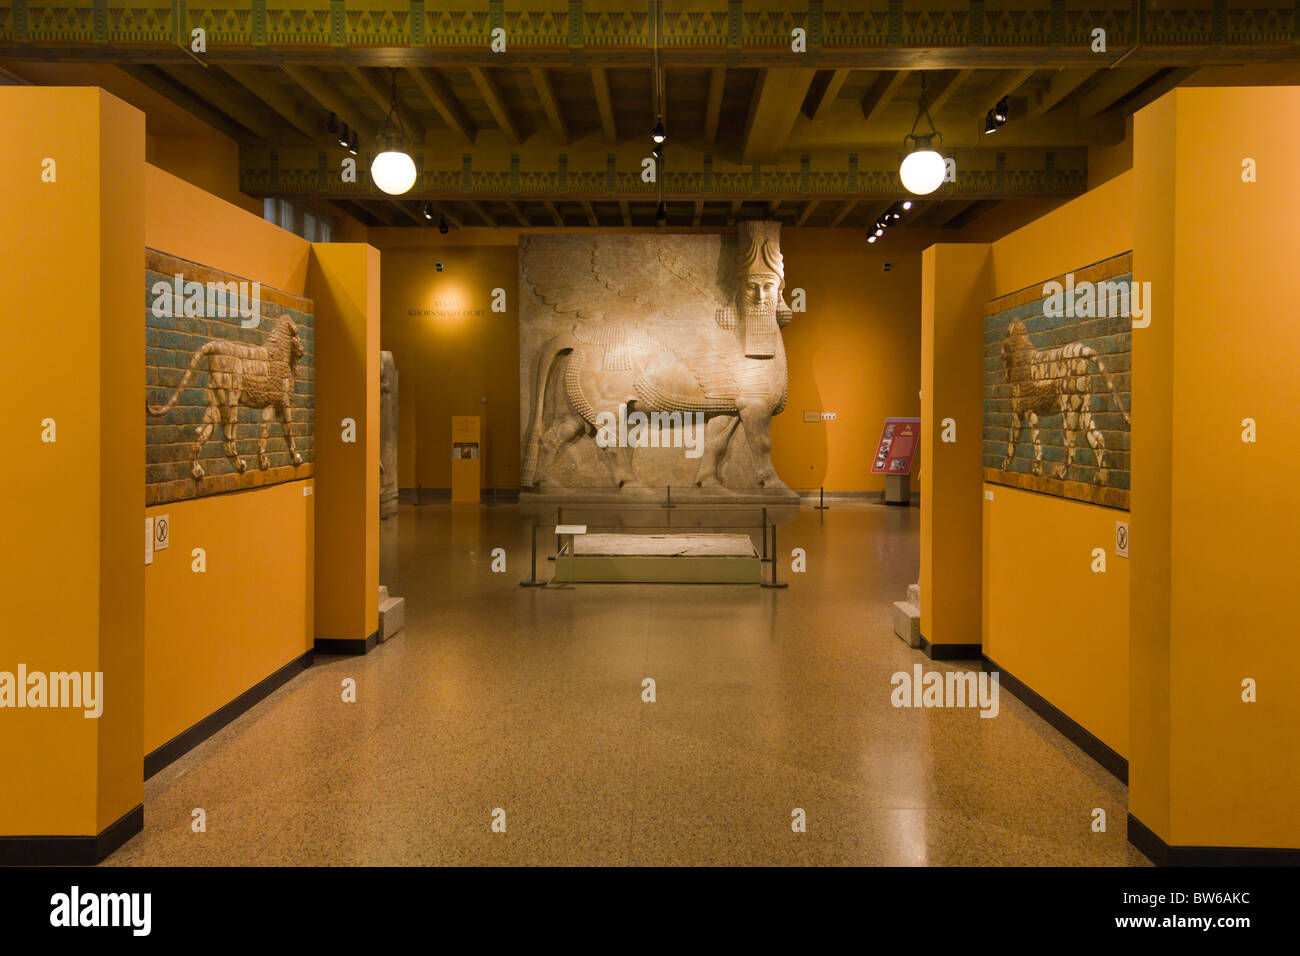 ancient Near East gallery, Oriental Institute, University of Chicago's archeology museum - Stock Image